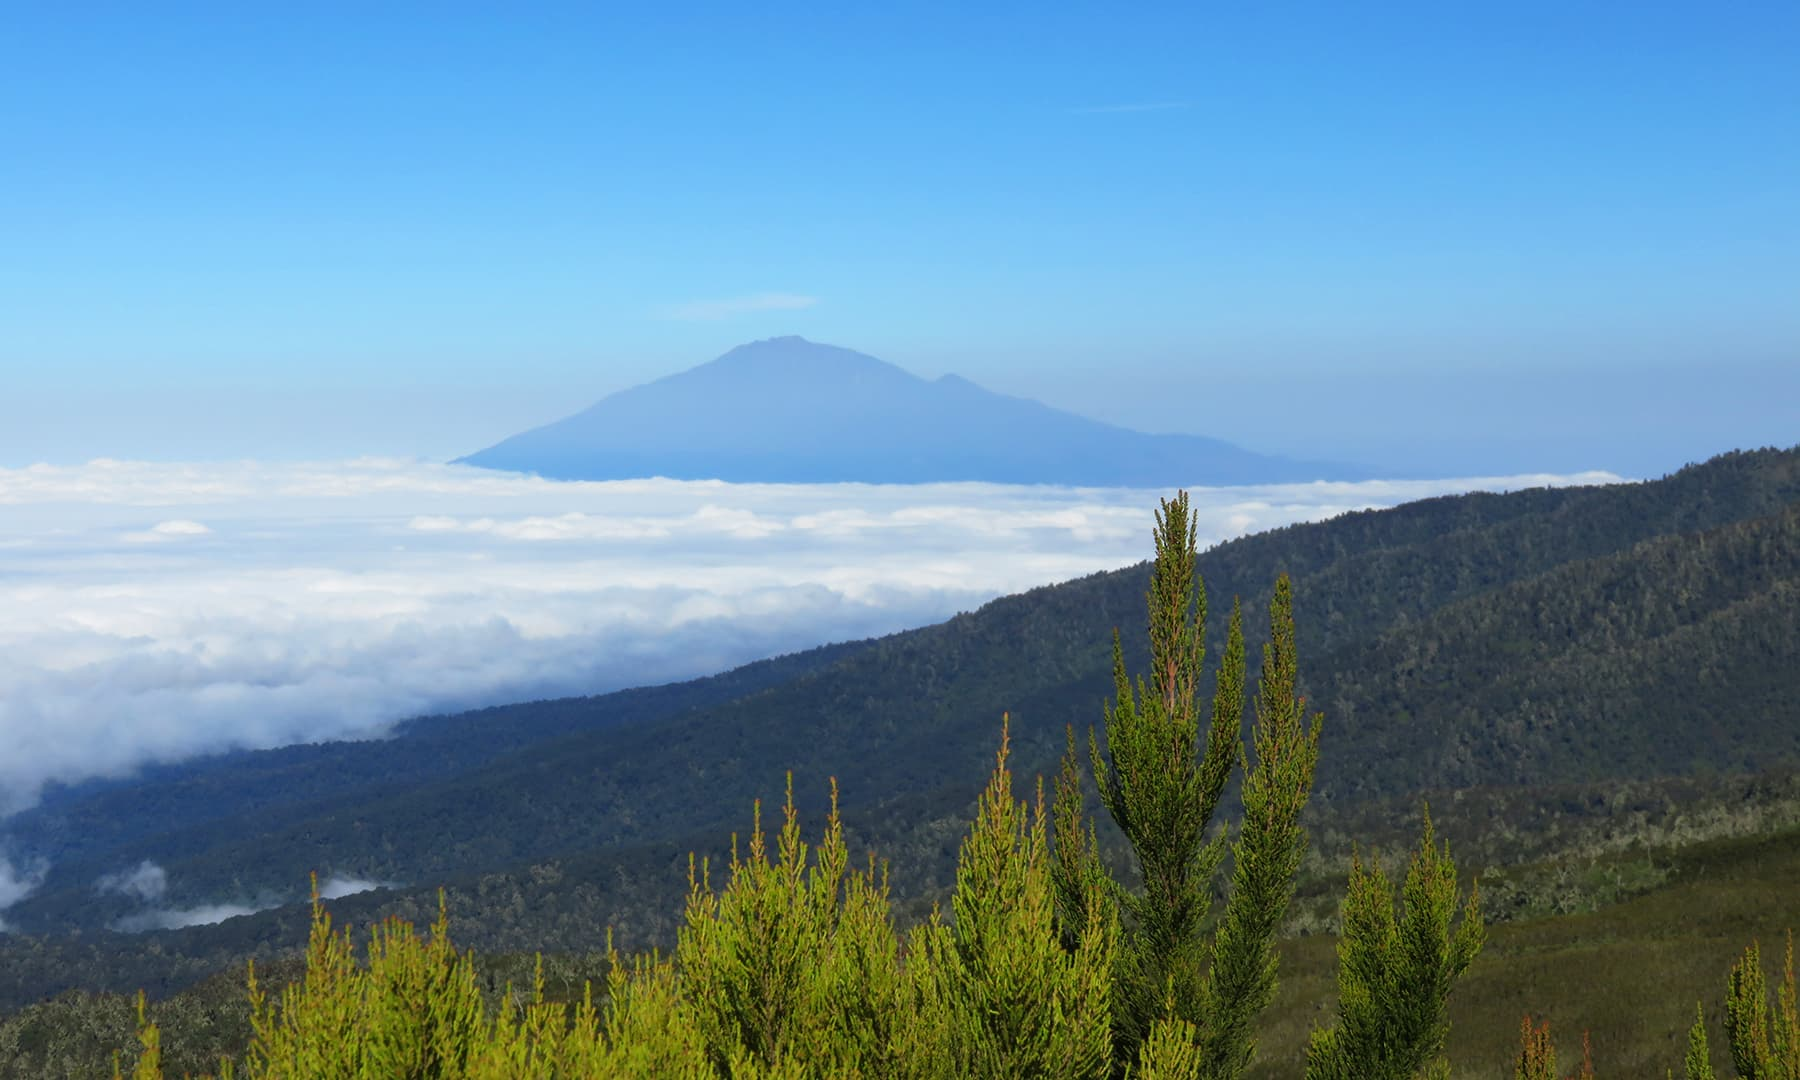 Our first glimpse of Mount Meru – Kilimanjaro's little brother, which then became a constant throughout the journey.